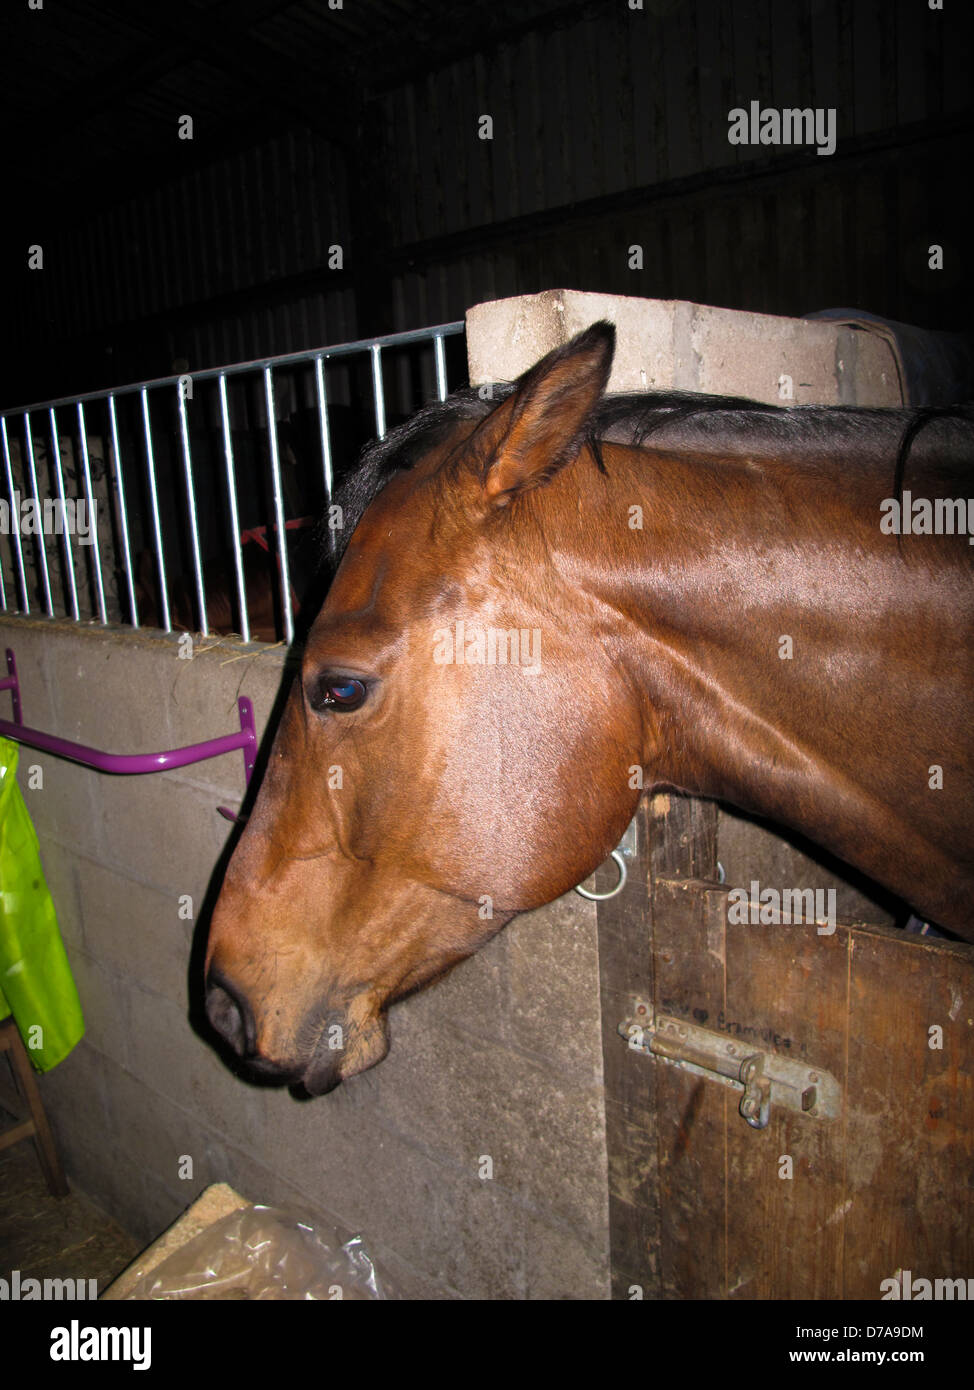 Bad tempered horse with ears pinned back leaning over stable door - Stock Image